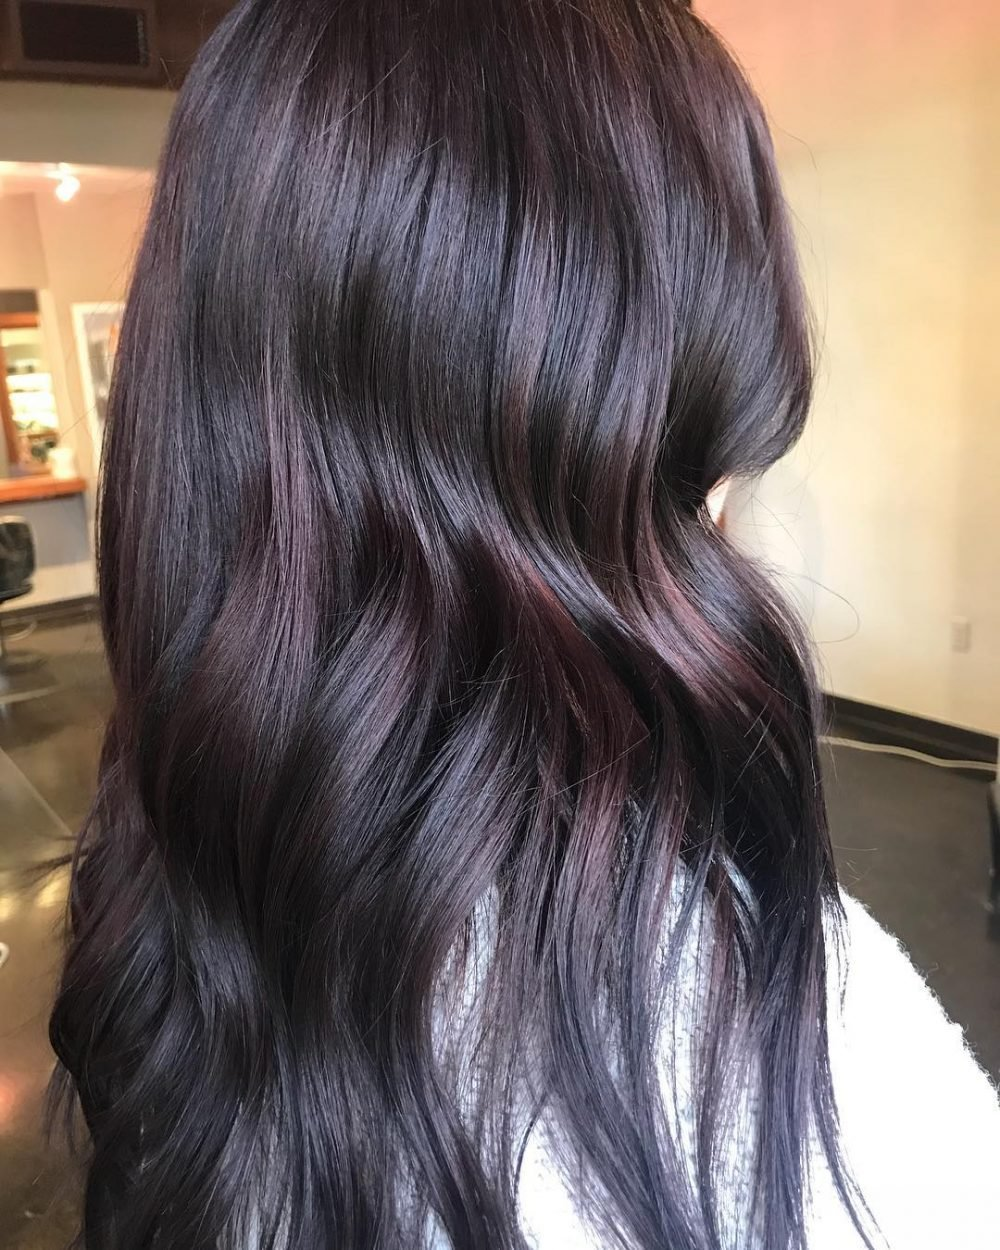 New 33 Flattering Dark Hair Colors For Every Skin Tone In 2019 Ideas With Pictures